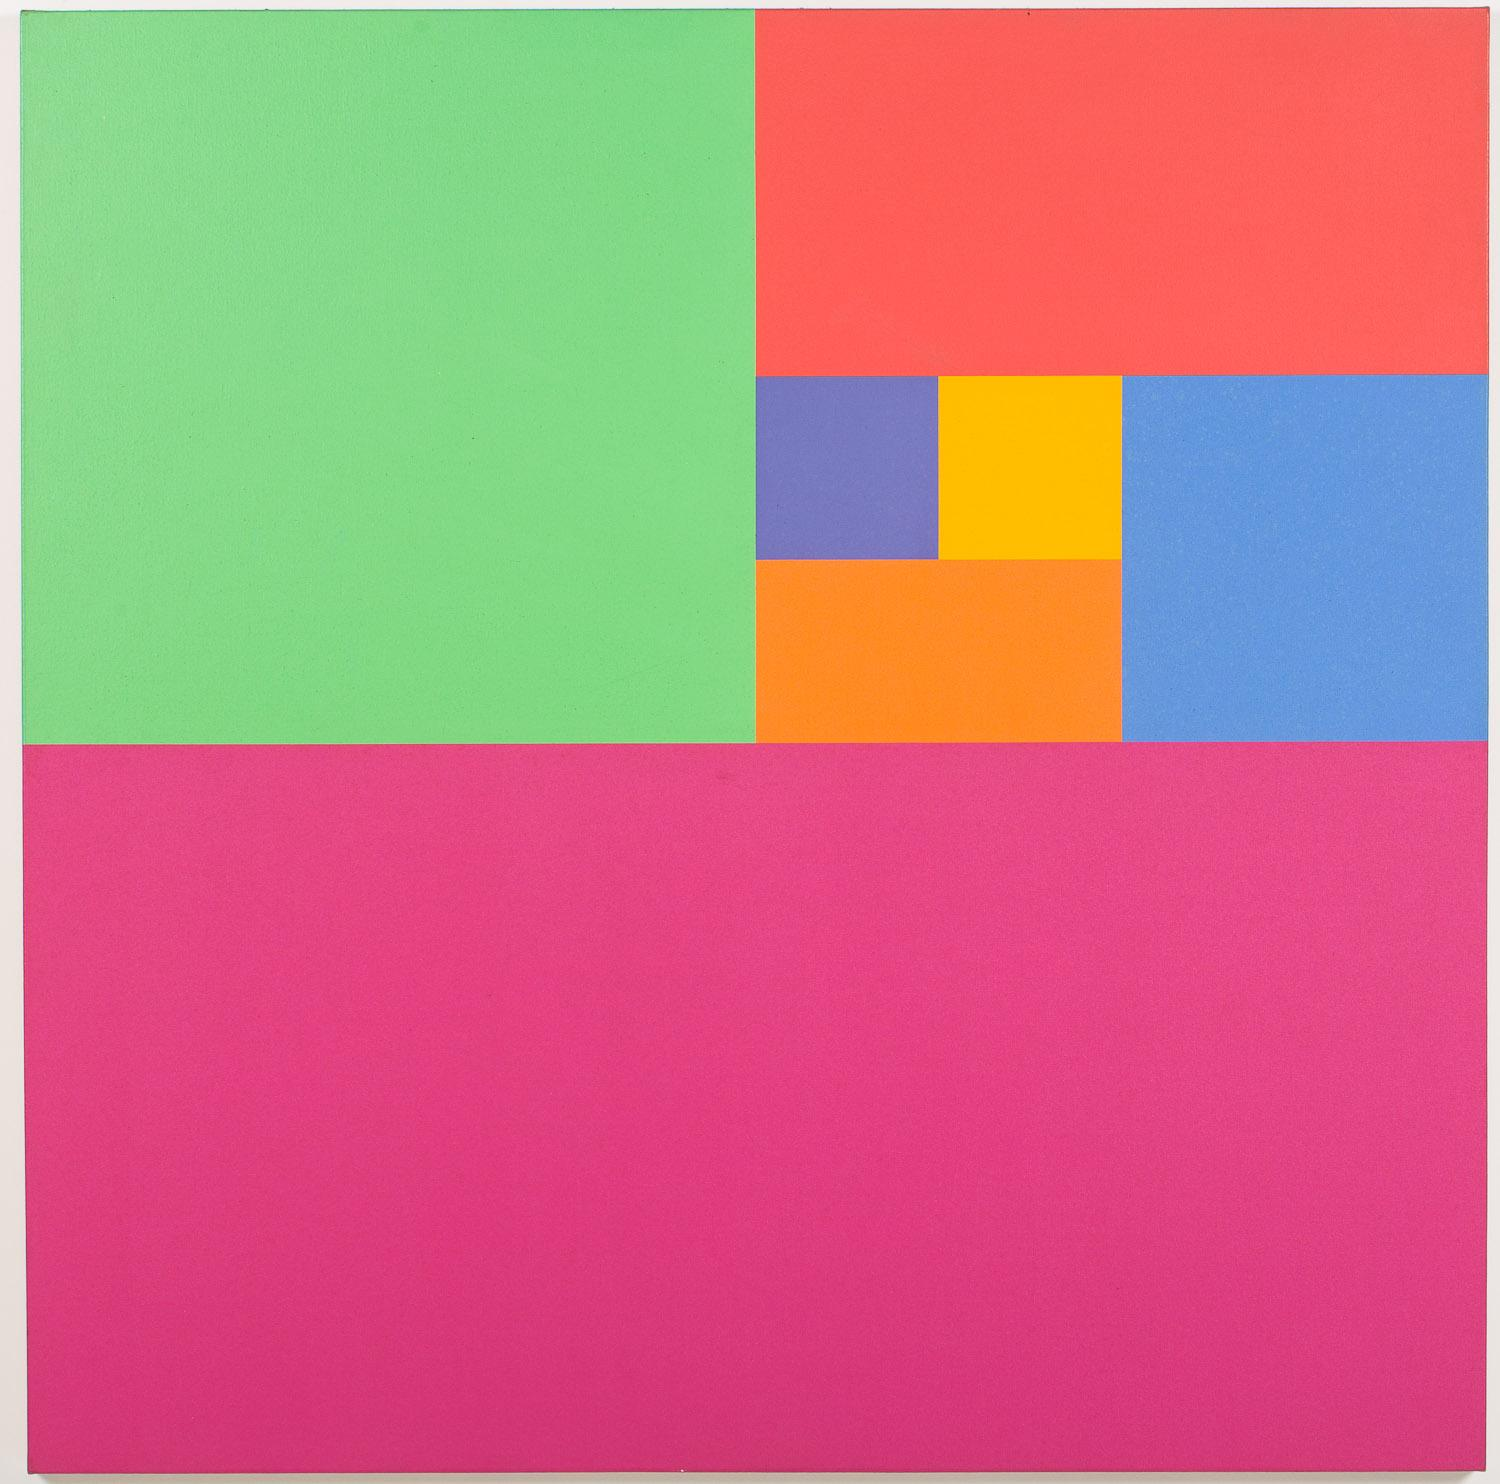 Mario Yrisarry (Philippines/New York, b. 1933), Color Study, Acrylic on Canvas, 1974